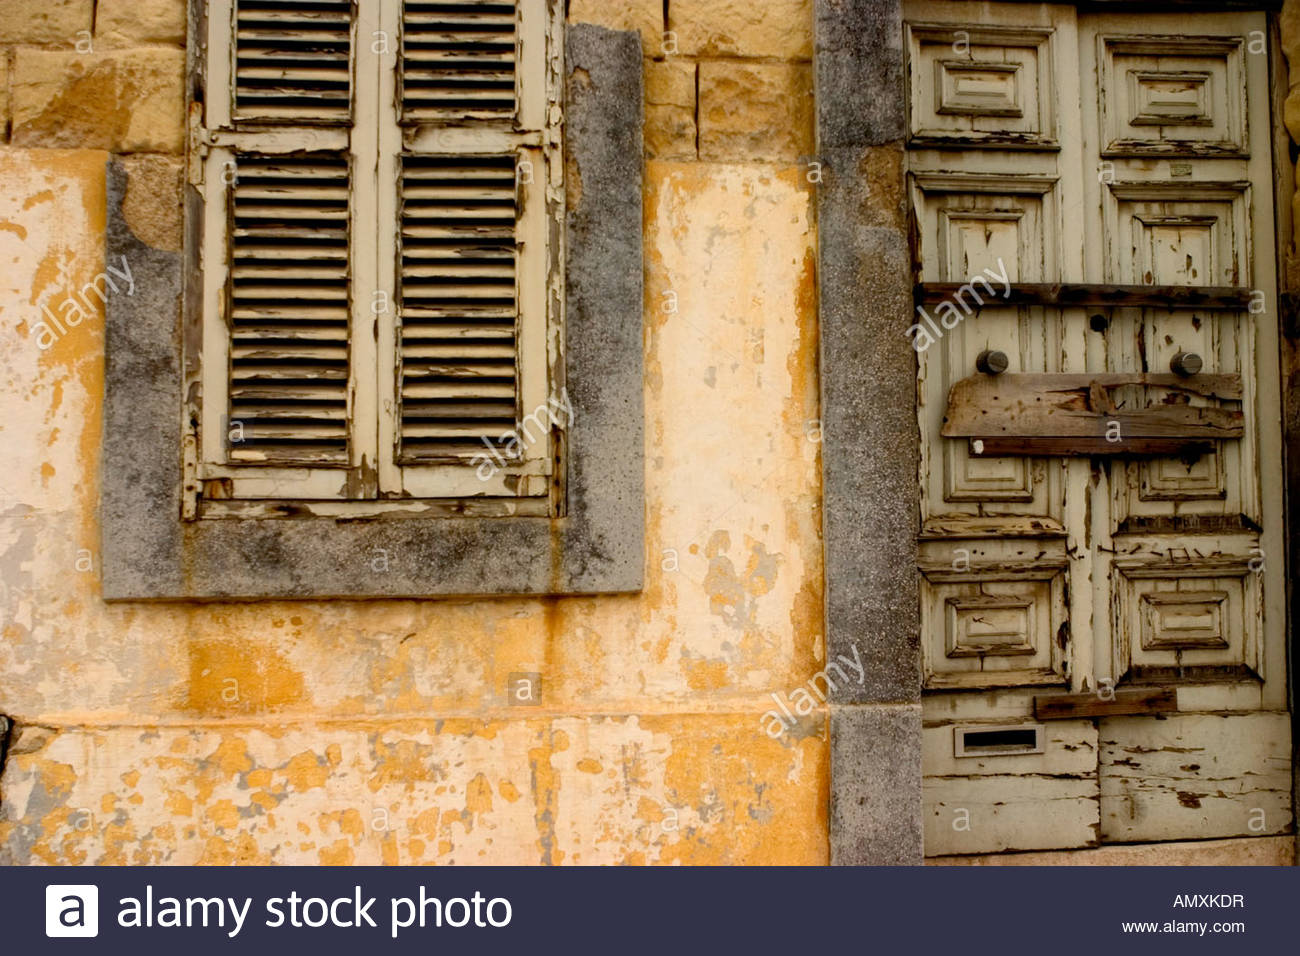 A neglected door, shutter and fascia in Malta - Stock Image